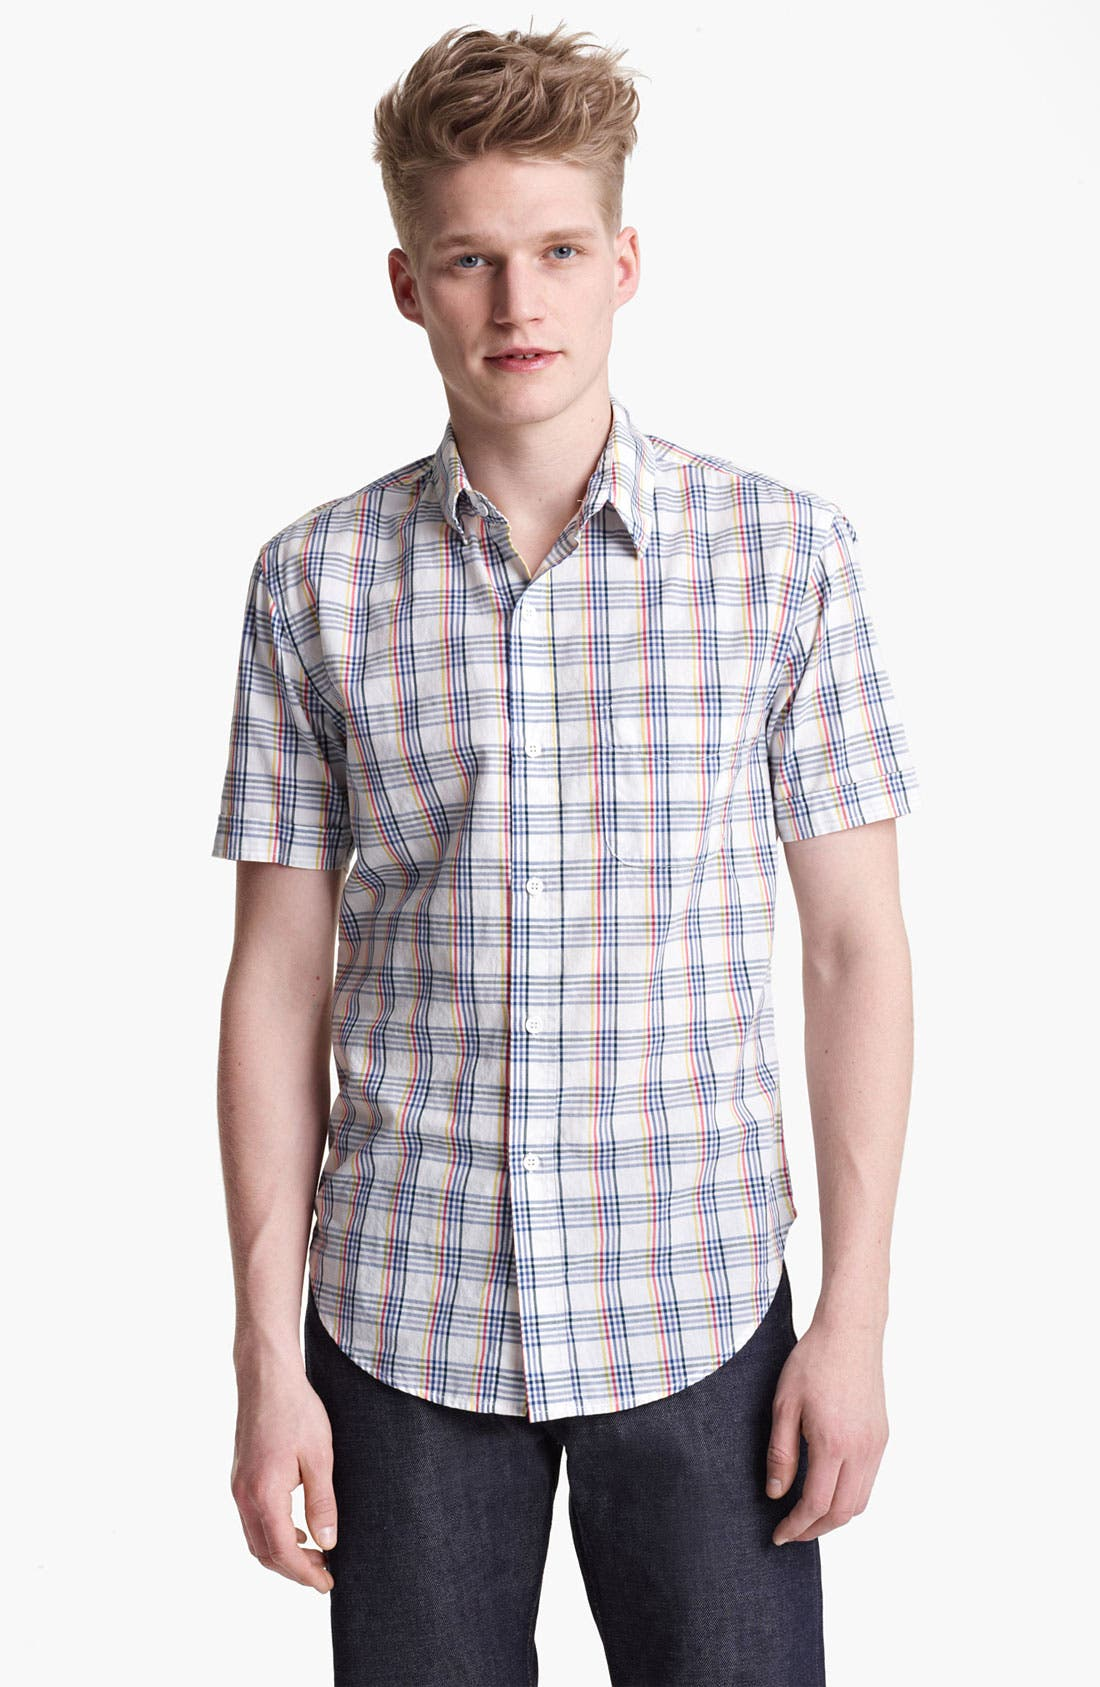 Alternate Image 1 Selected - Band of Outsiders Multi Check Woven Shirt